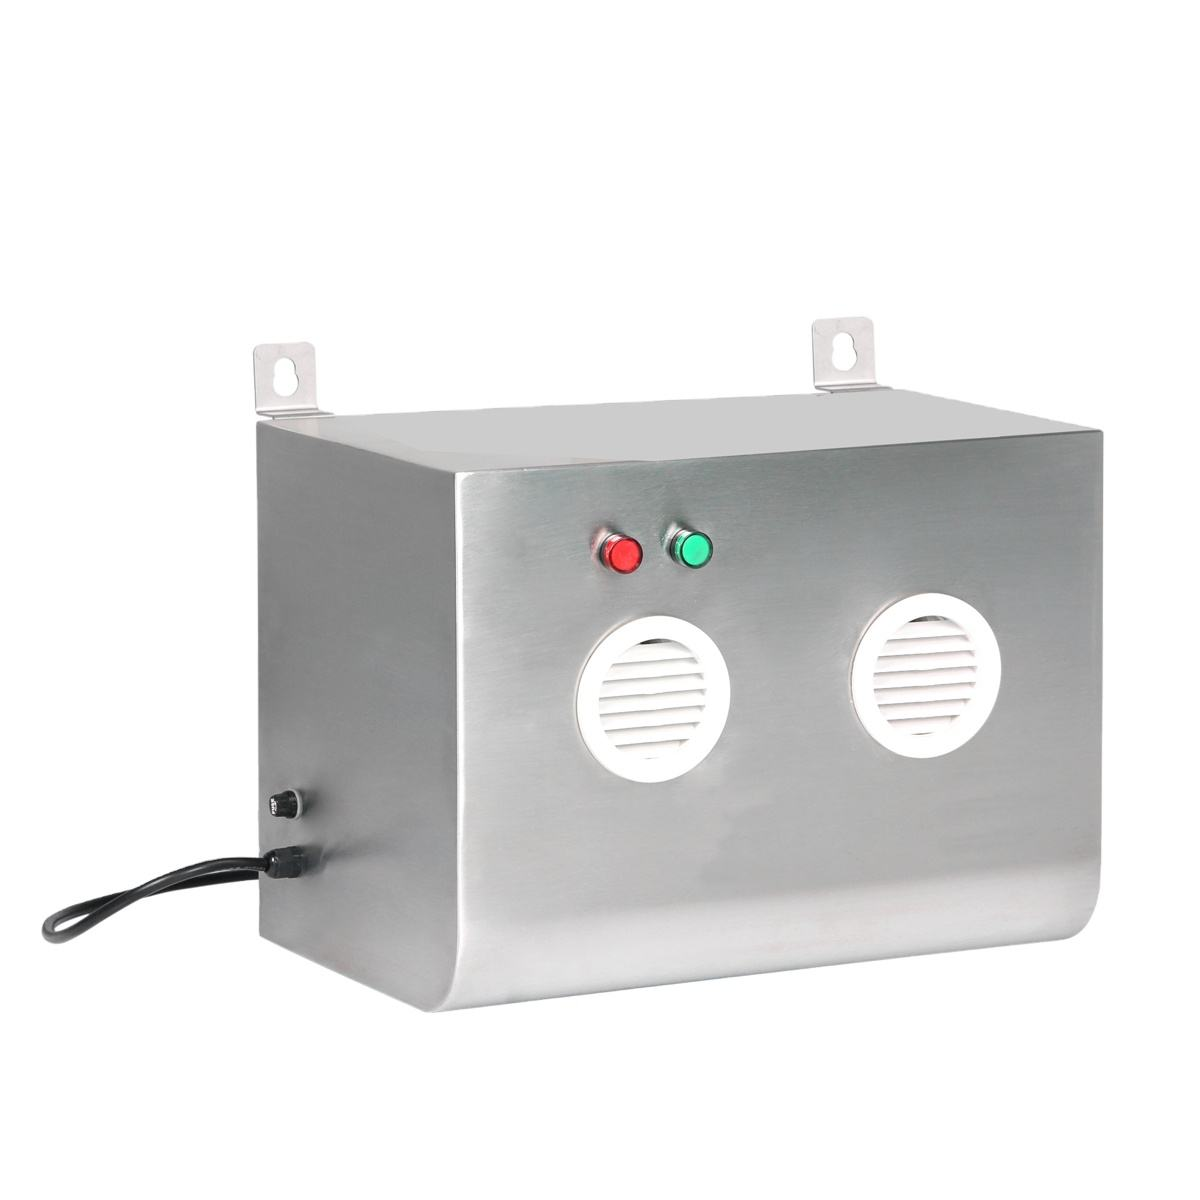 Fruits and Vegetables Fish and Meat ozone sterilizer Ionizer Remove Cigarette Smoke Absorbing gas